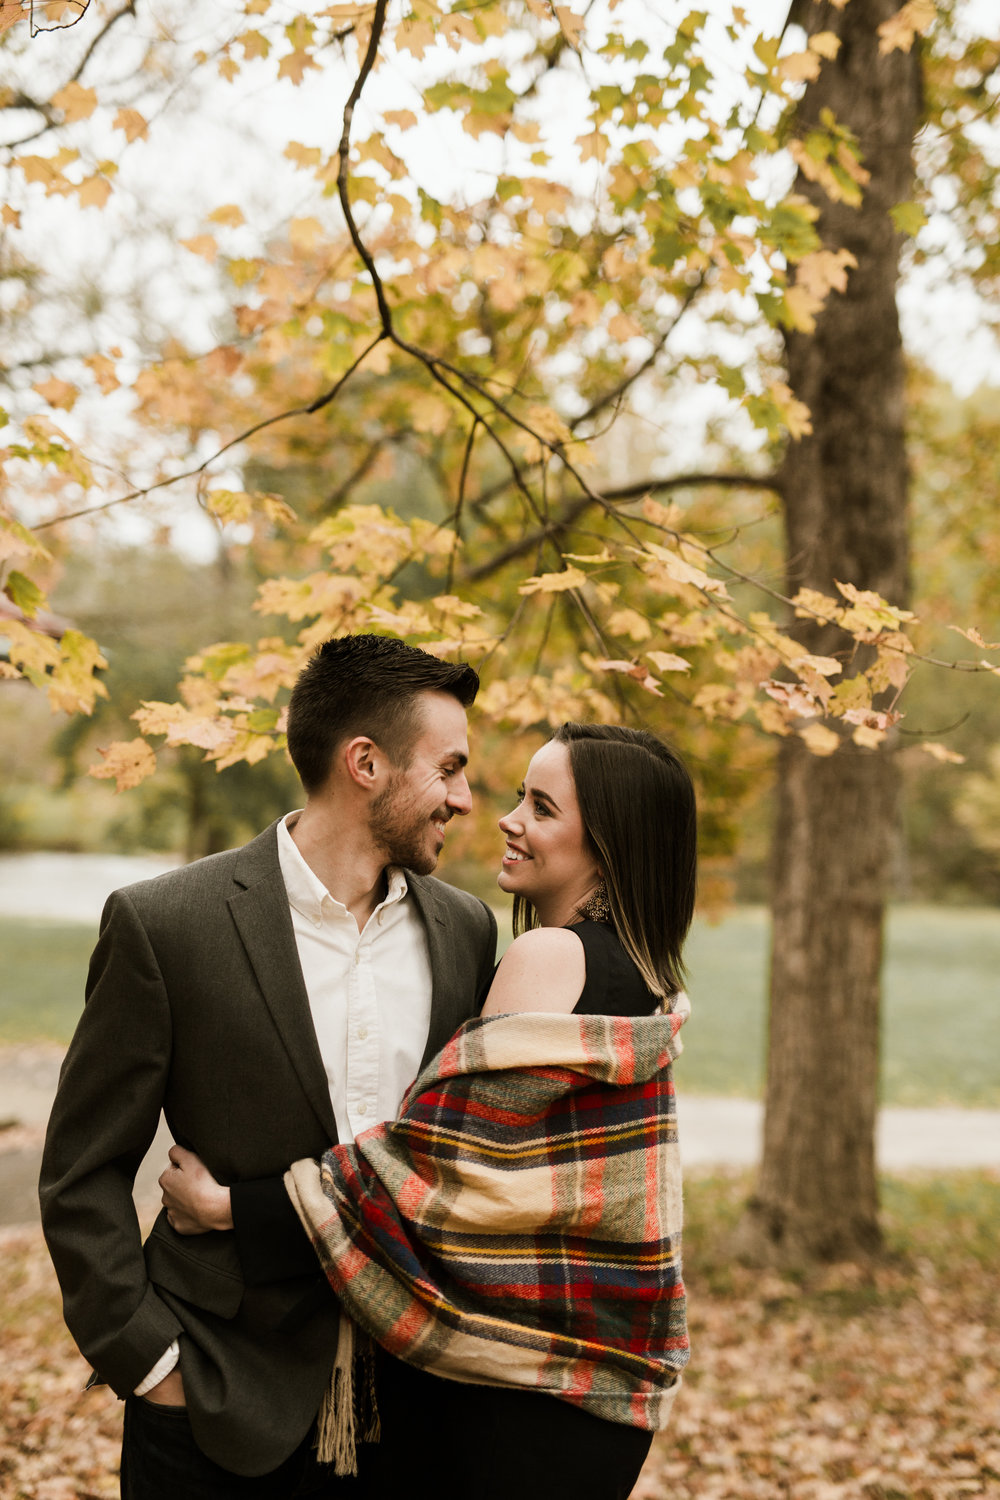 Kelsey and Daniel Engagement 2018 Crystal Ludwick Photo Louisville Wedding Photographer Kentucky Wedding Photographer (2 of 31).jpg